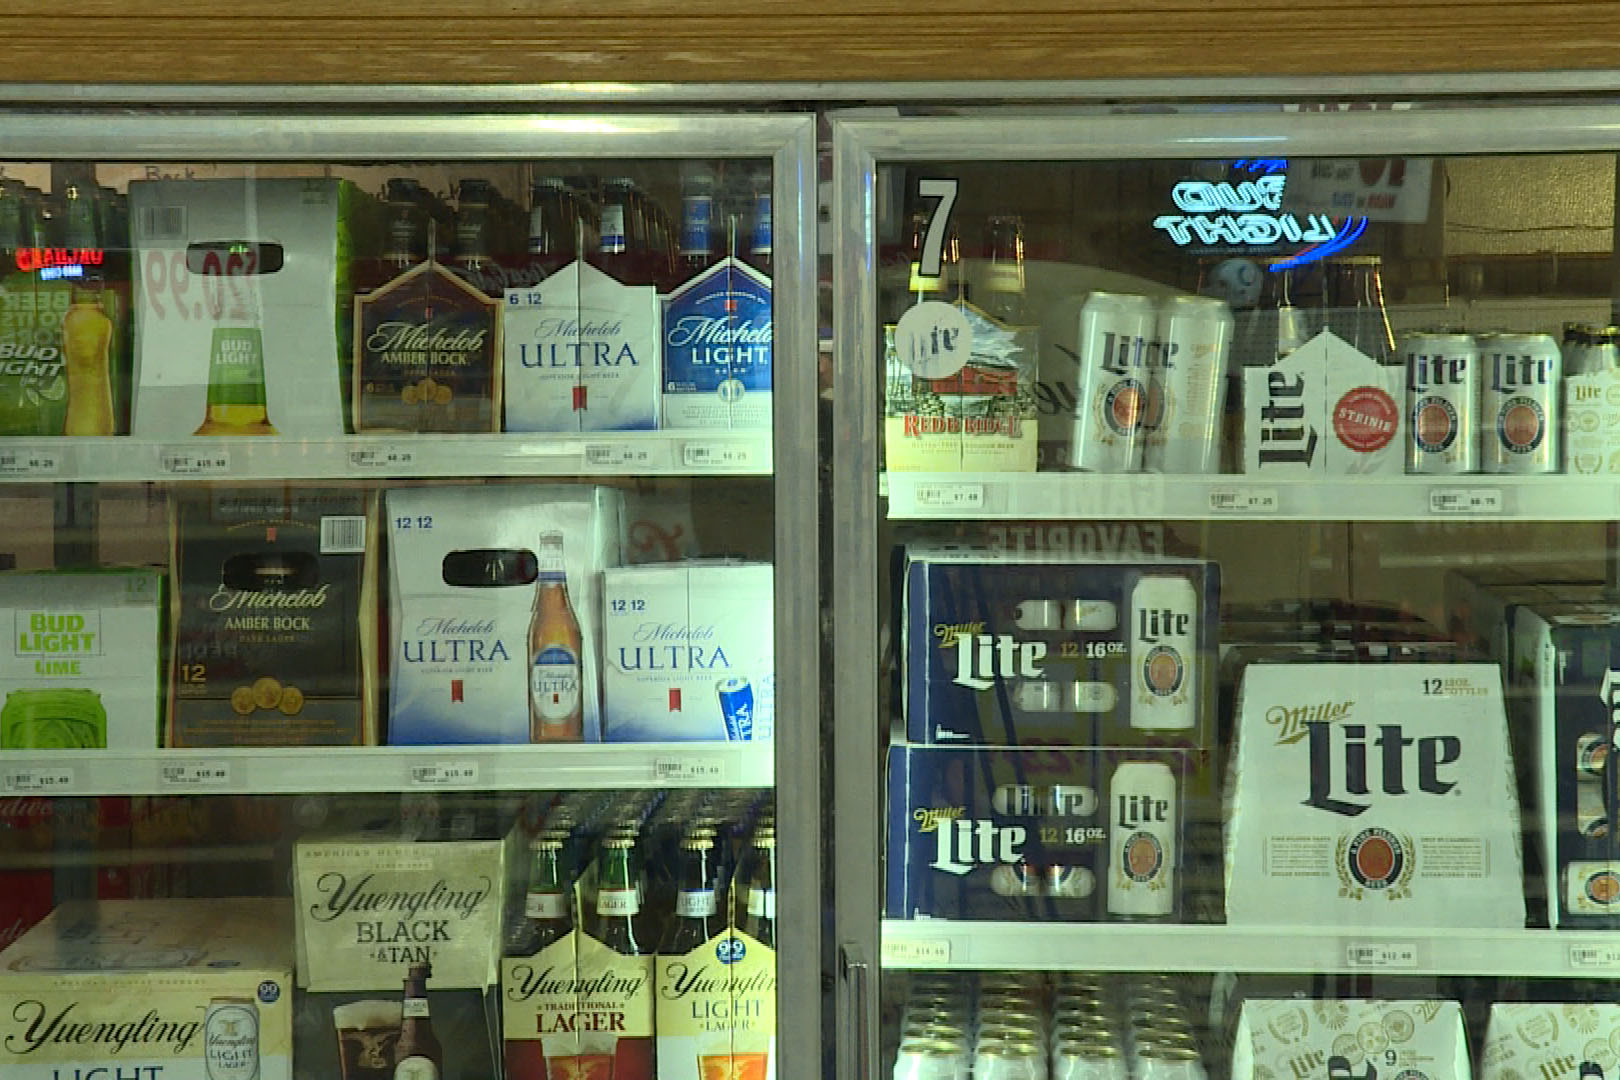 Indiana law only allows liquor stores to sell cold beer.